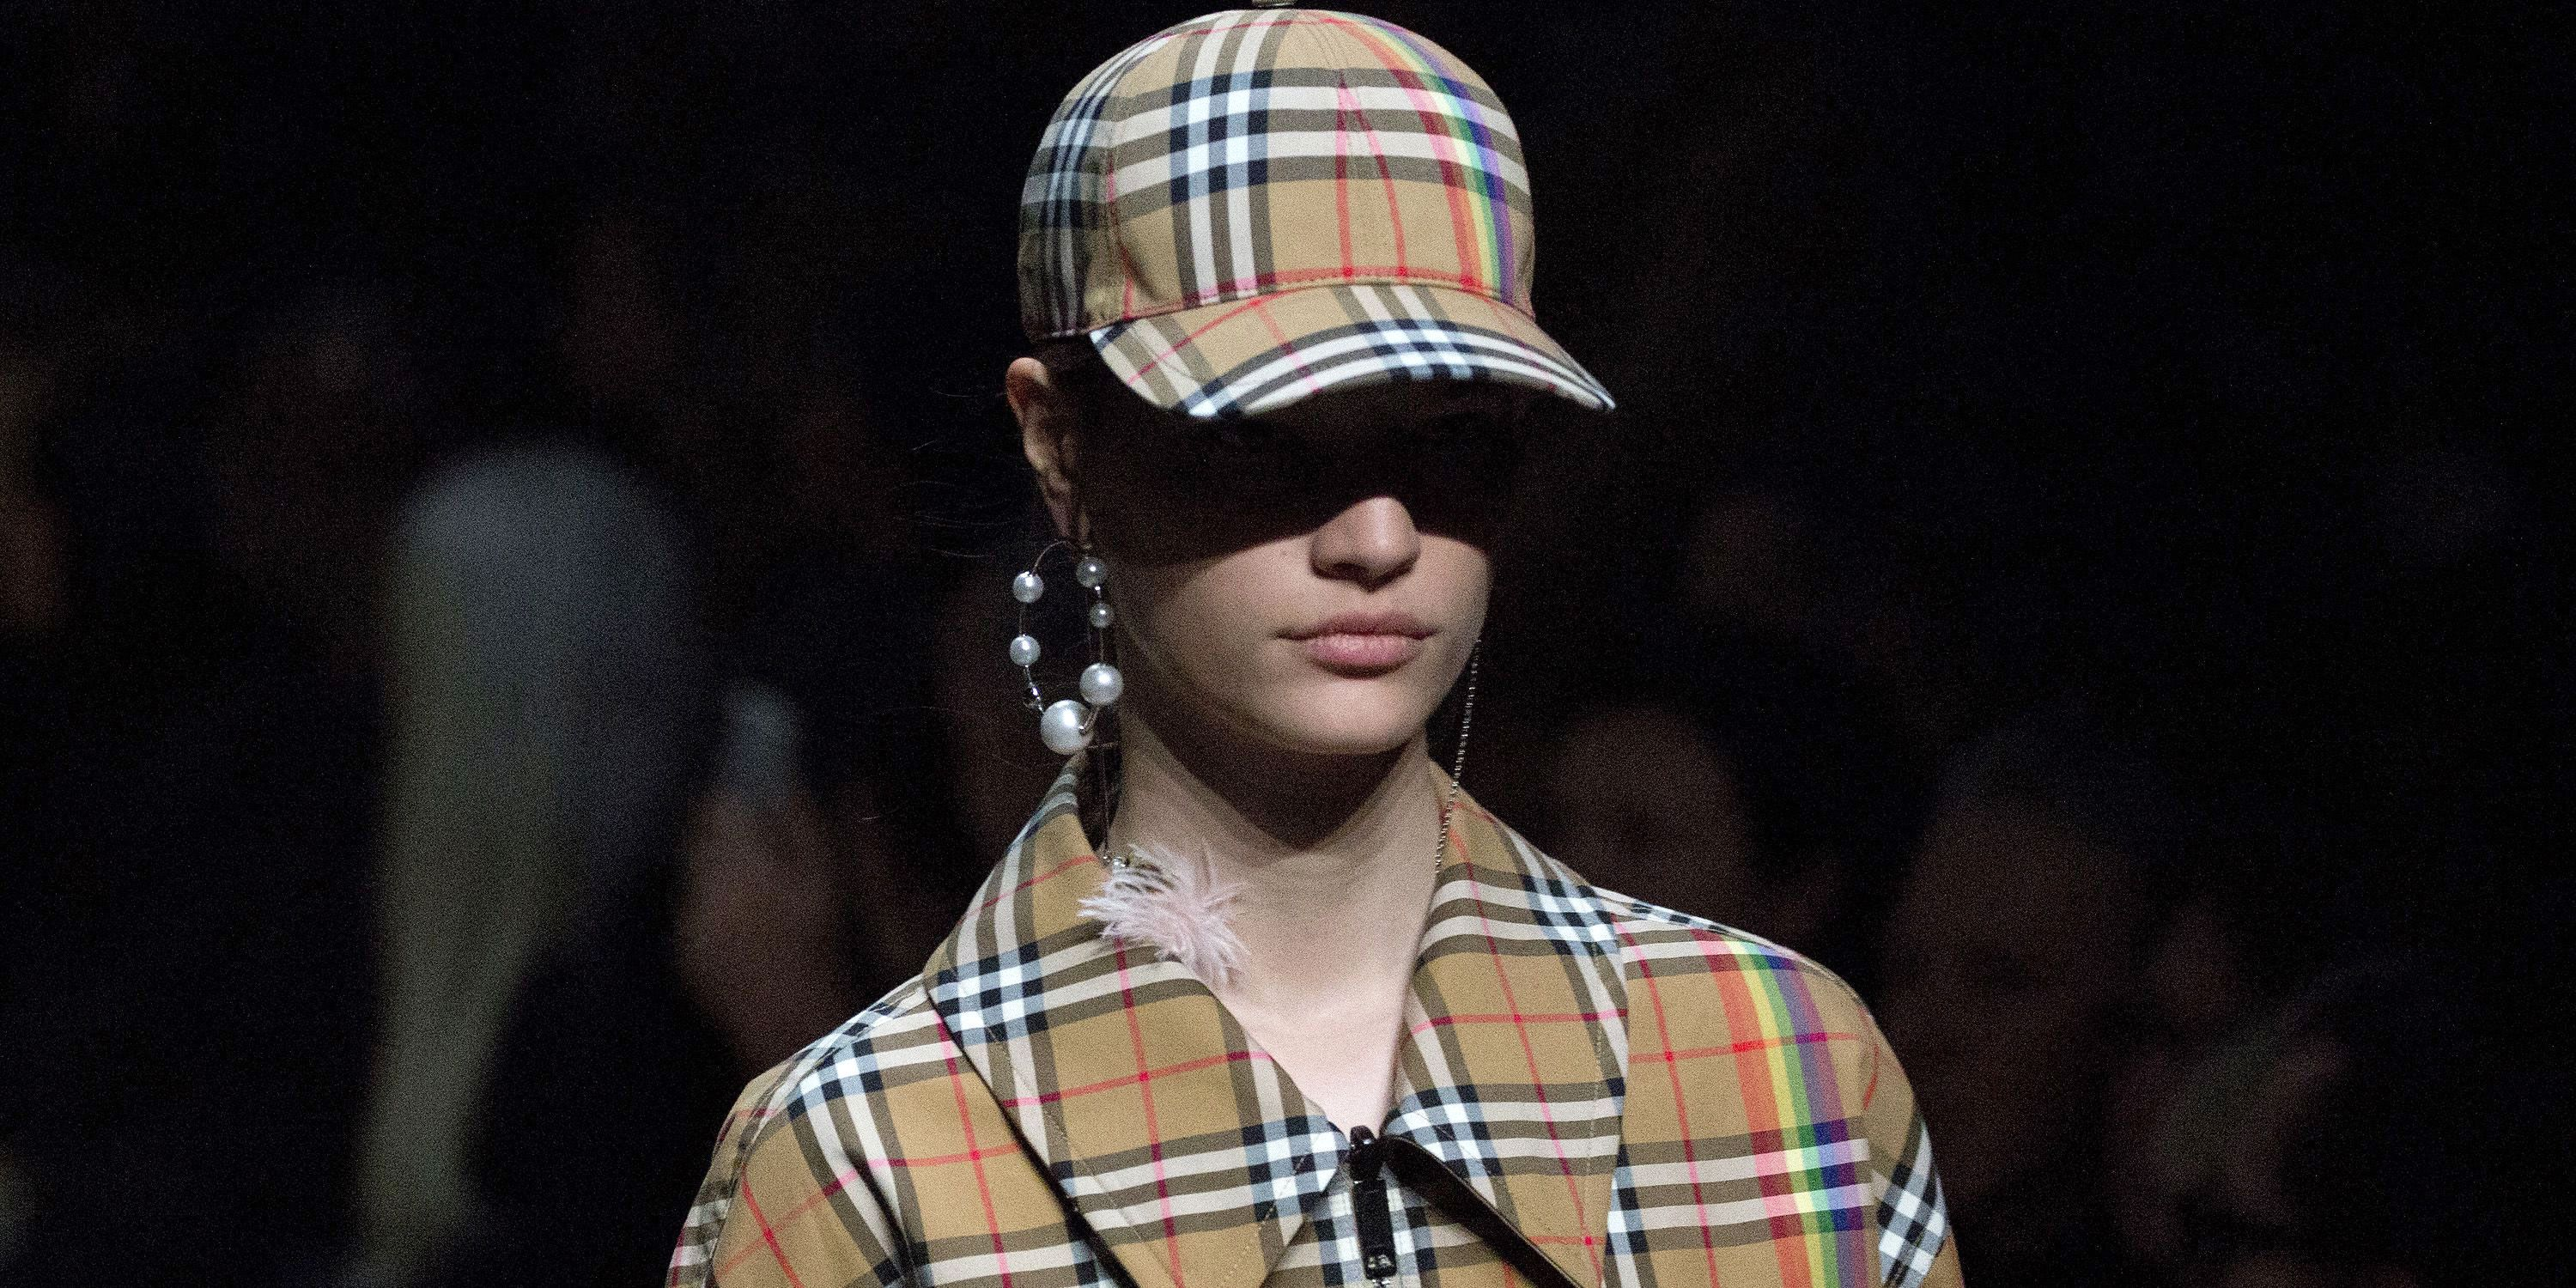 Watch Burberry To Stop Using Fur And Burning Unsold Stock video